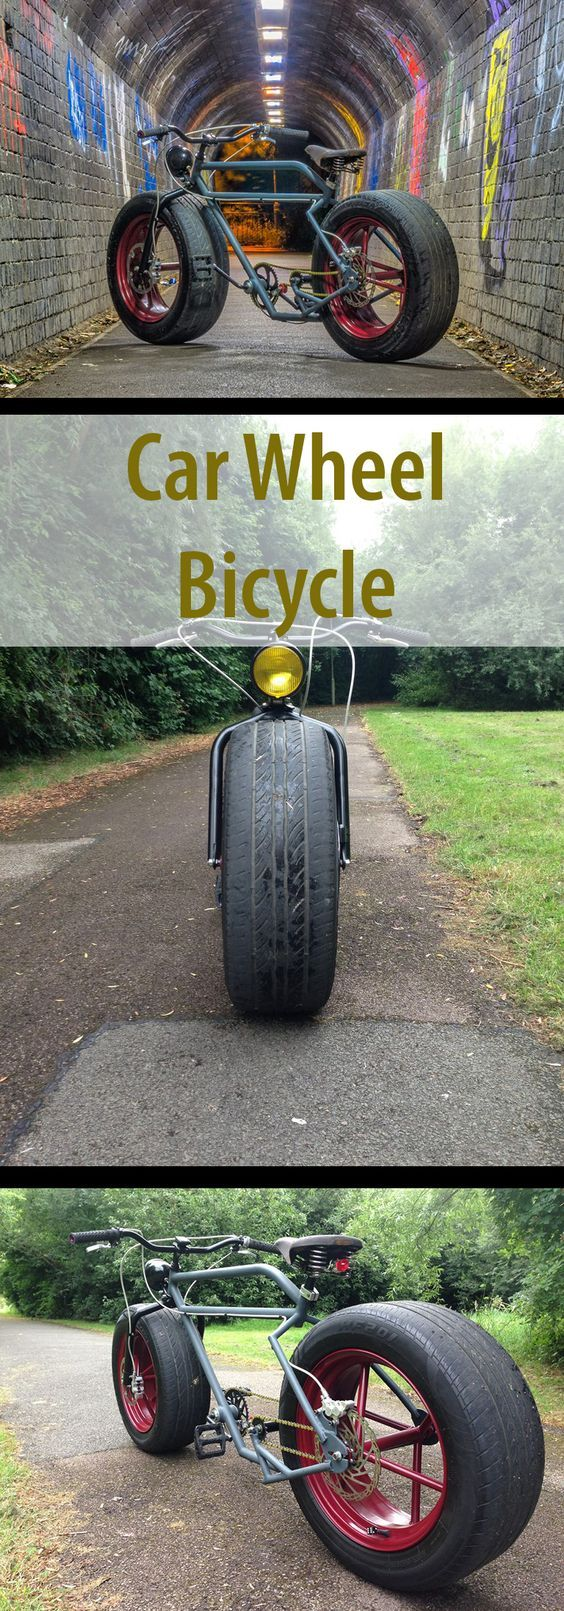 Car Wheel Bicycle - the Learn to Weld Project | Bicycle ...